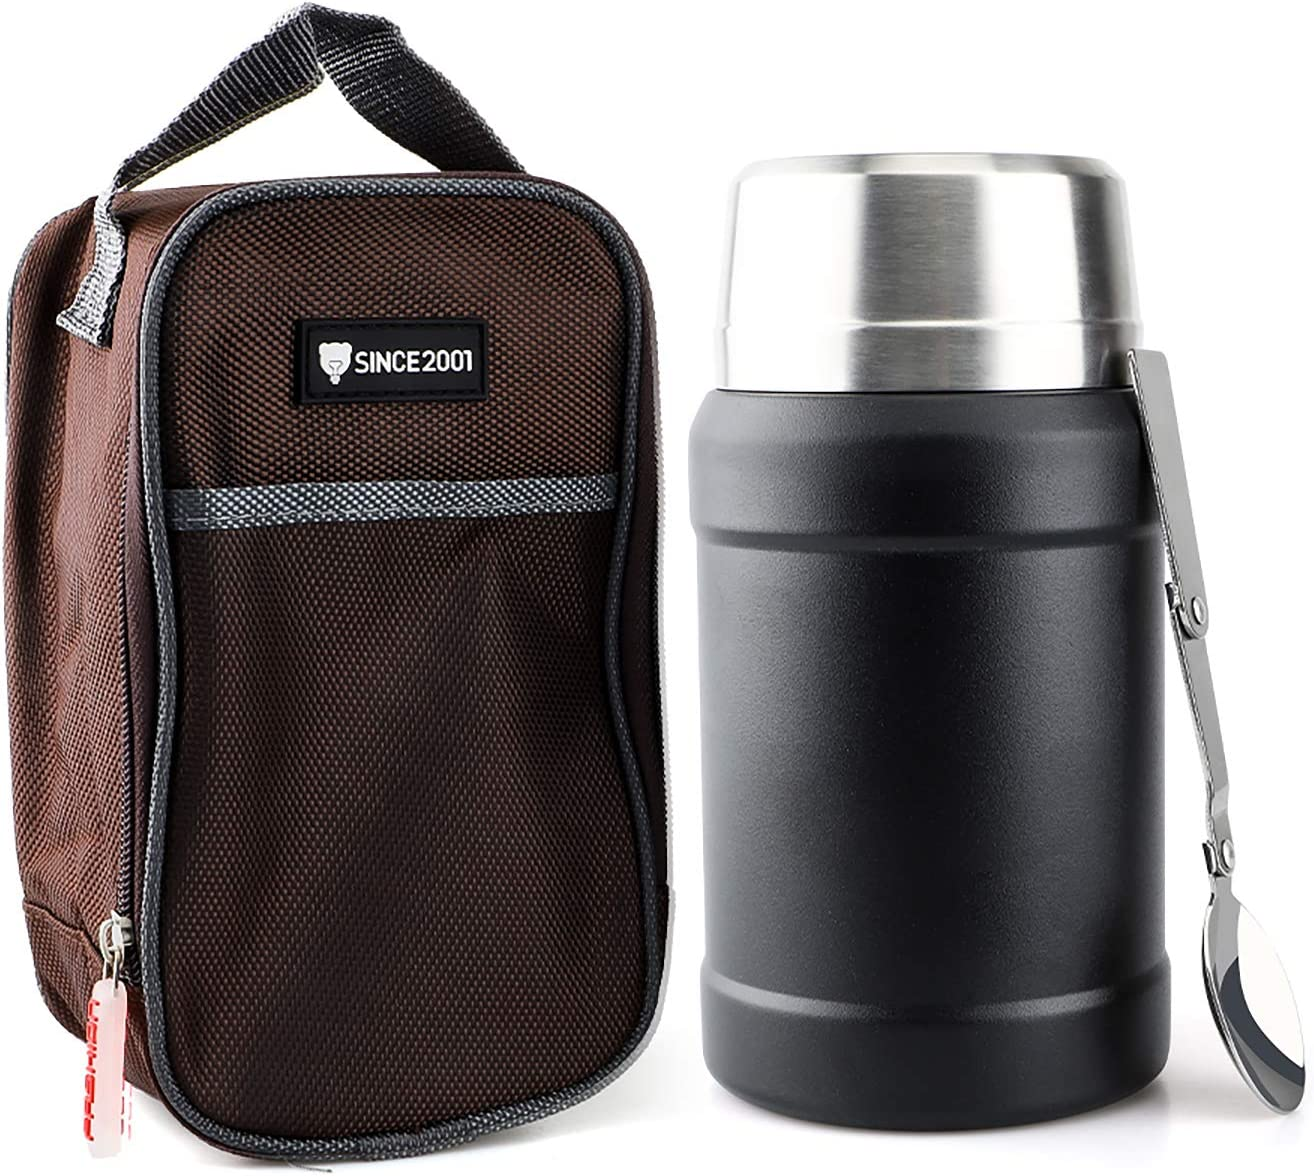 OKADI Insulated Food Thermos - 27oz Stainless Steel Food Jar with Folding Spoon - Double Wall Vacuum Insulated Powder Coating Soup Flask with Portable Insulated Bag